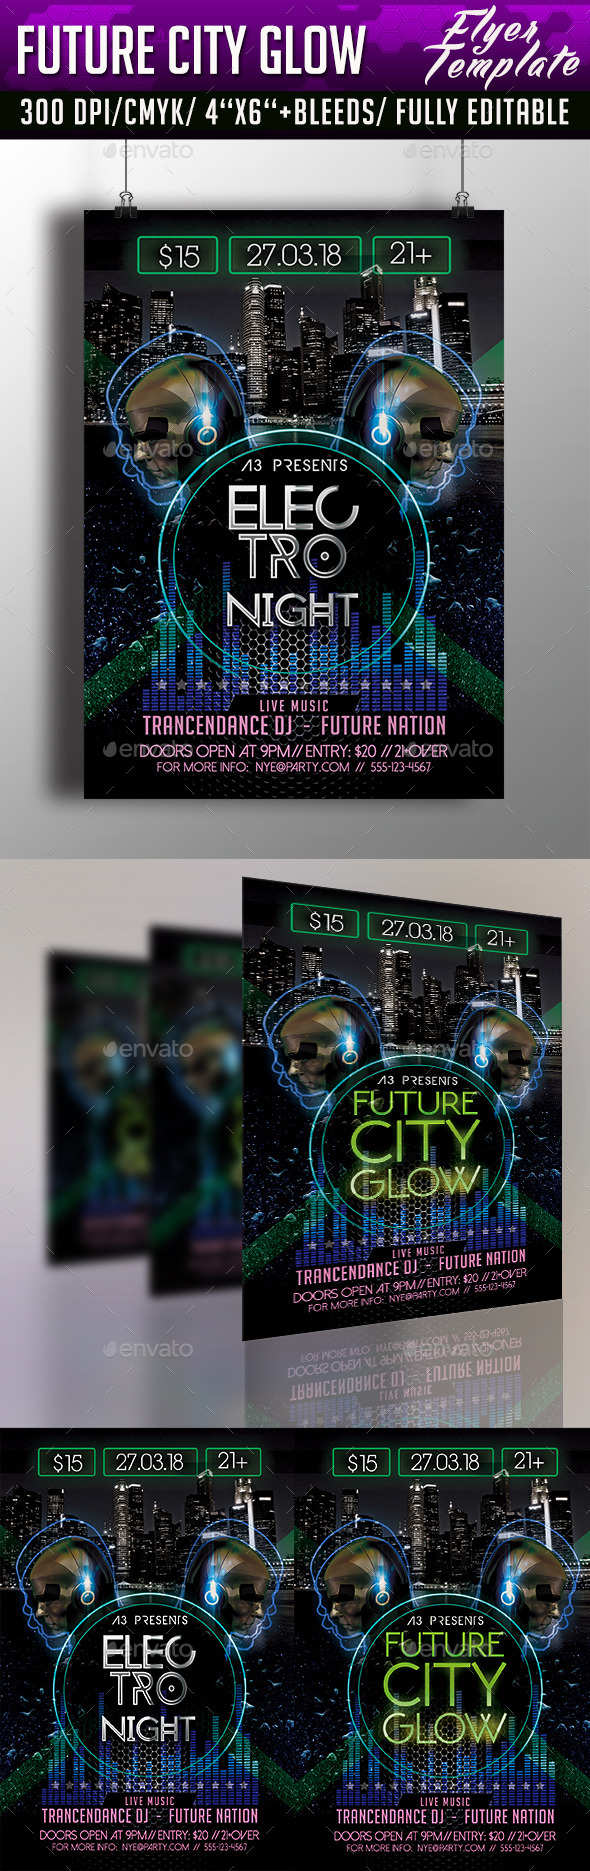 Future City Glow Flyer Template - Clubs & Parties Events